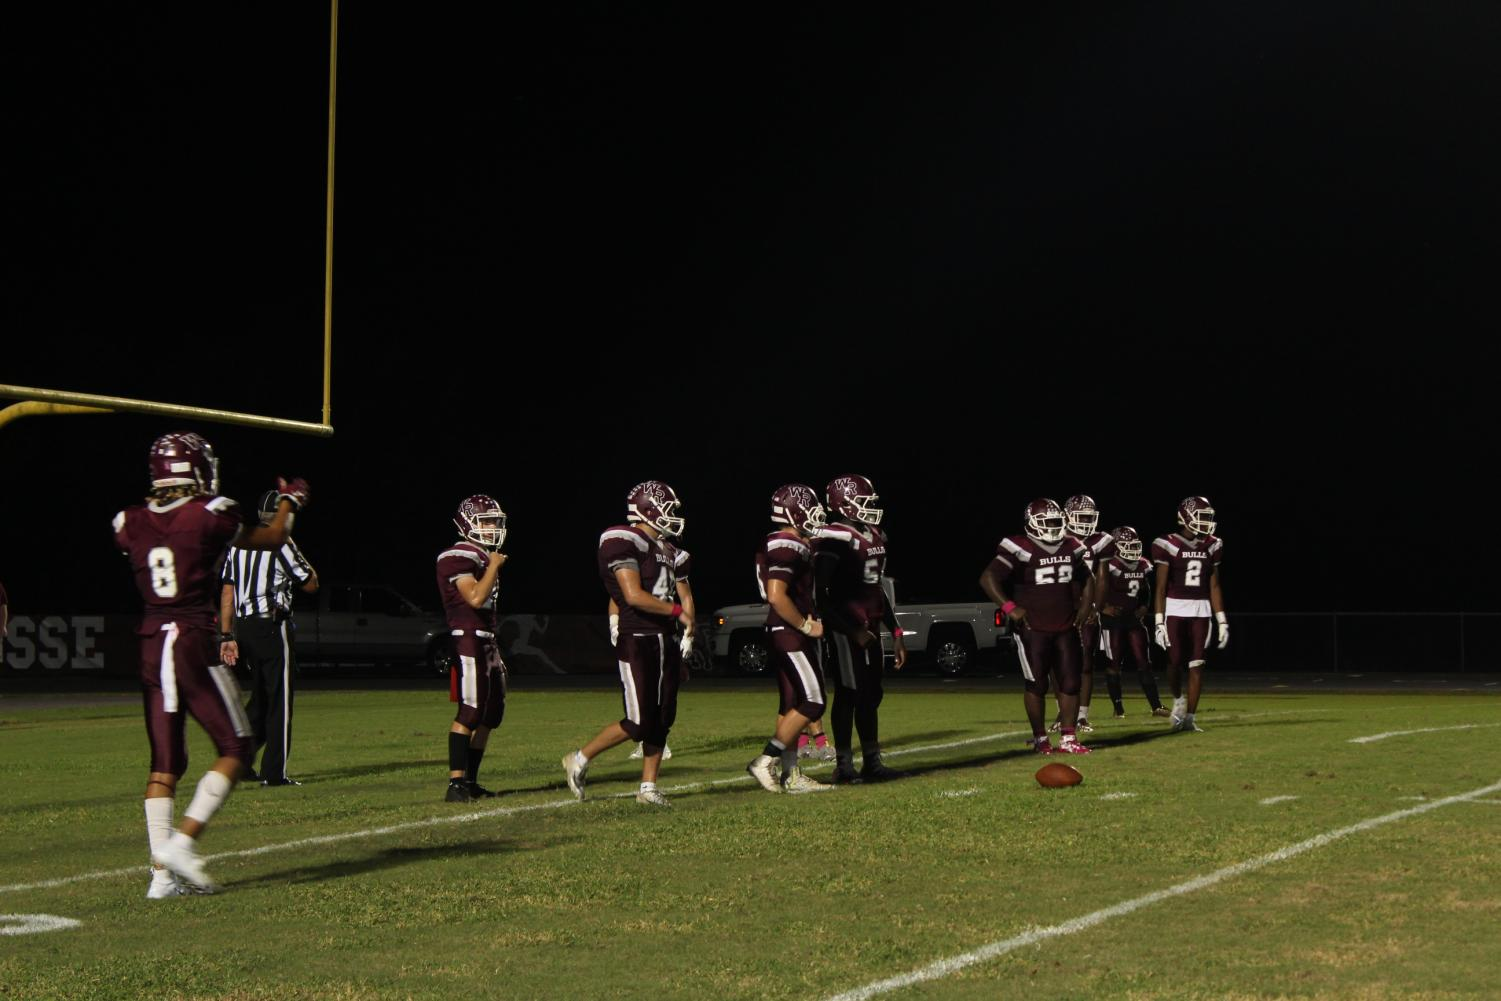 The Wiregrass Ranch Bulls gather at the line of scrimmage to make a play.